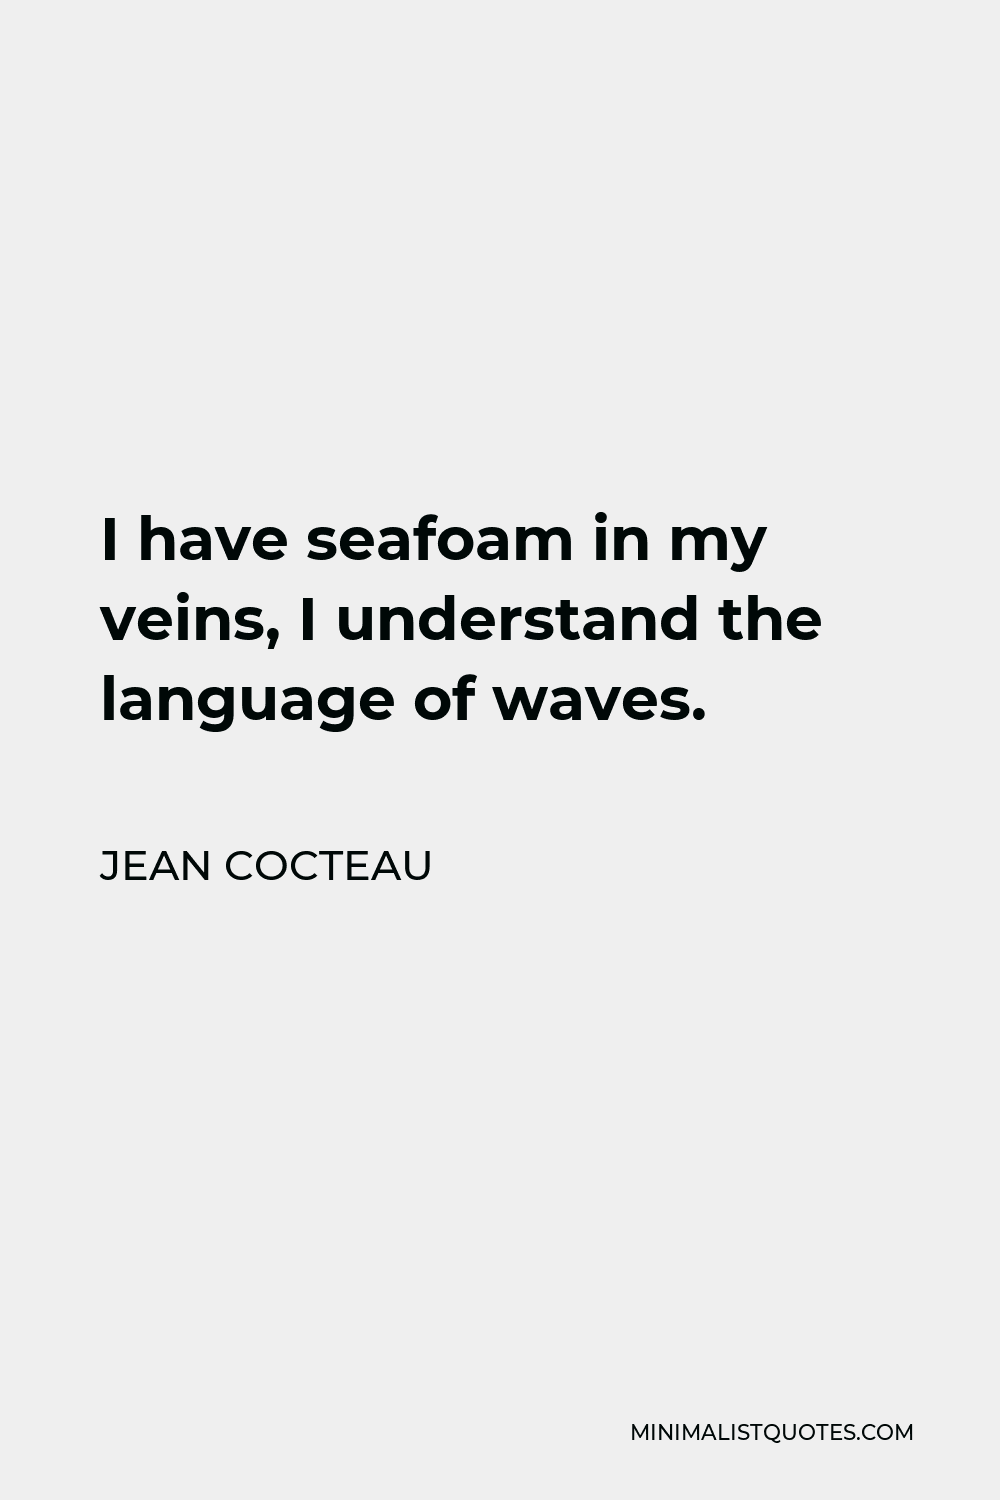 Jean Cocteau Quote - I have seafoam in my veins, I understand the language of waves.